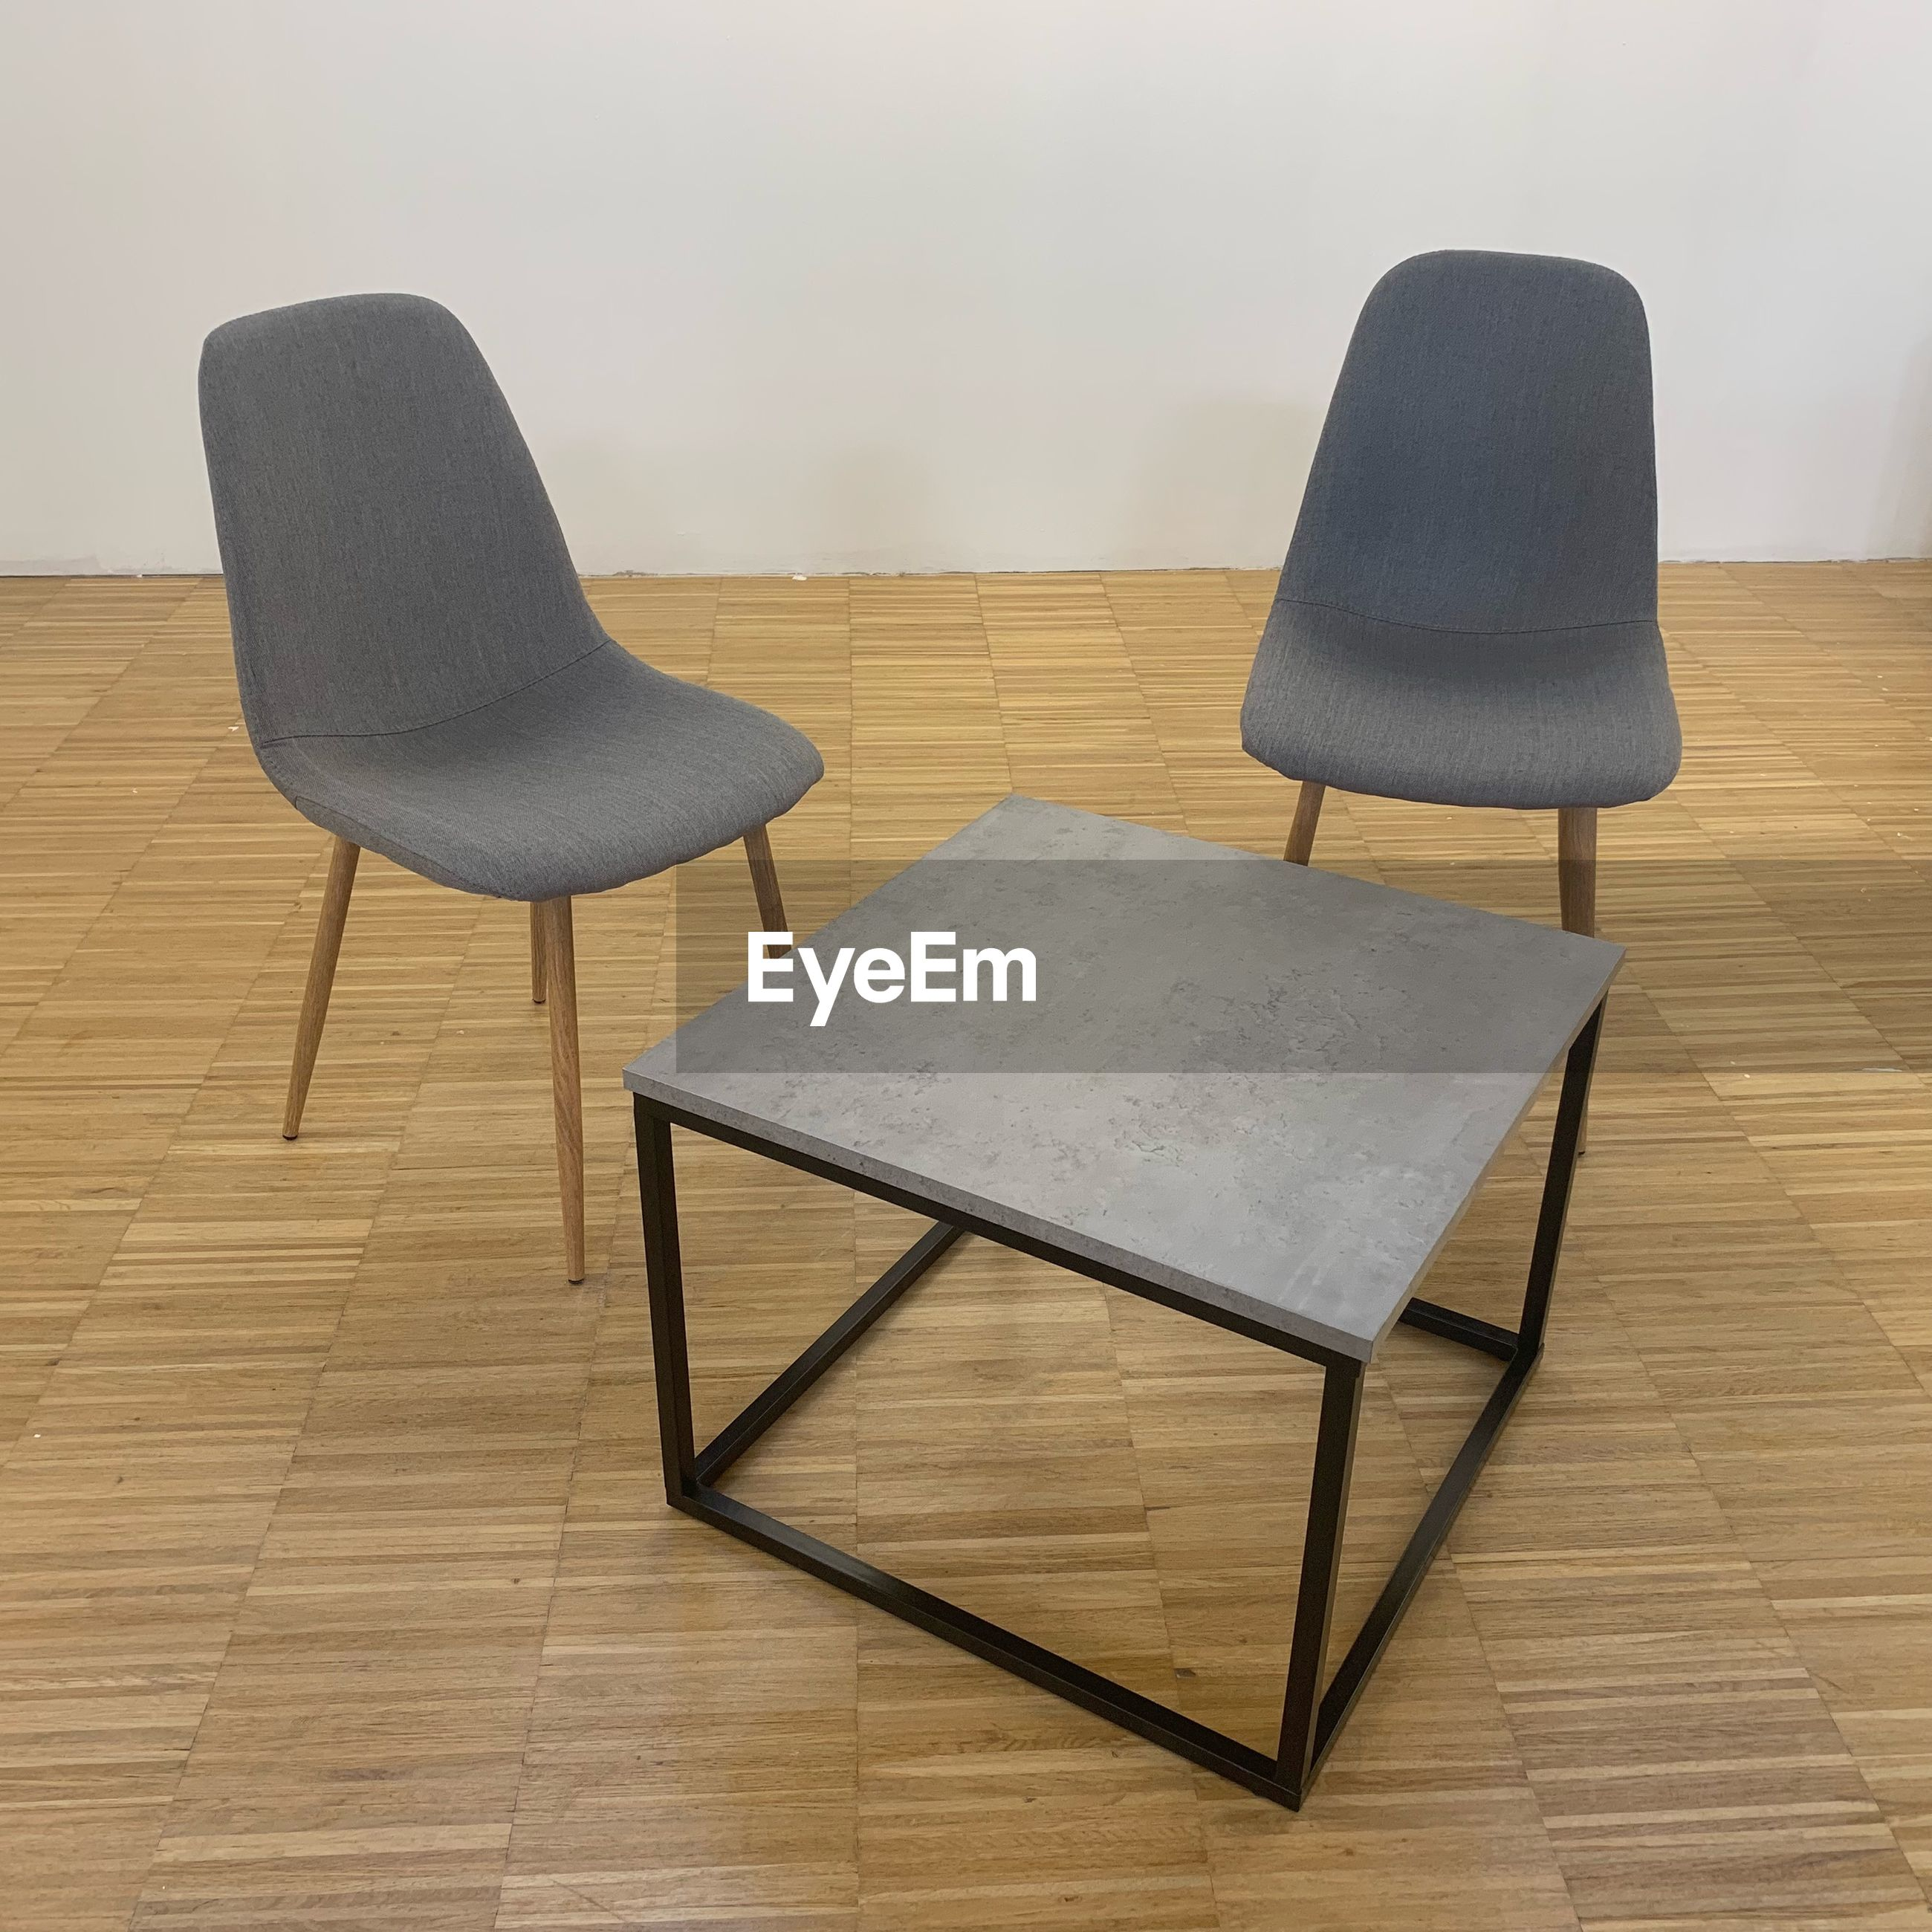 HIGH ANGLE VIEW OF EMPTY CHAIR ON TABLE